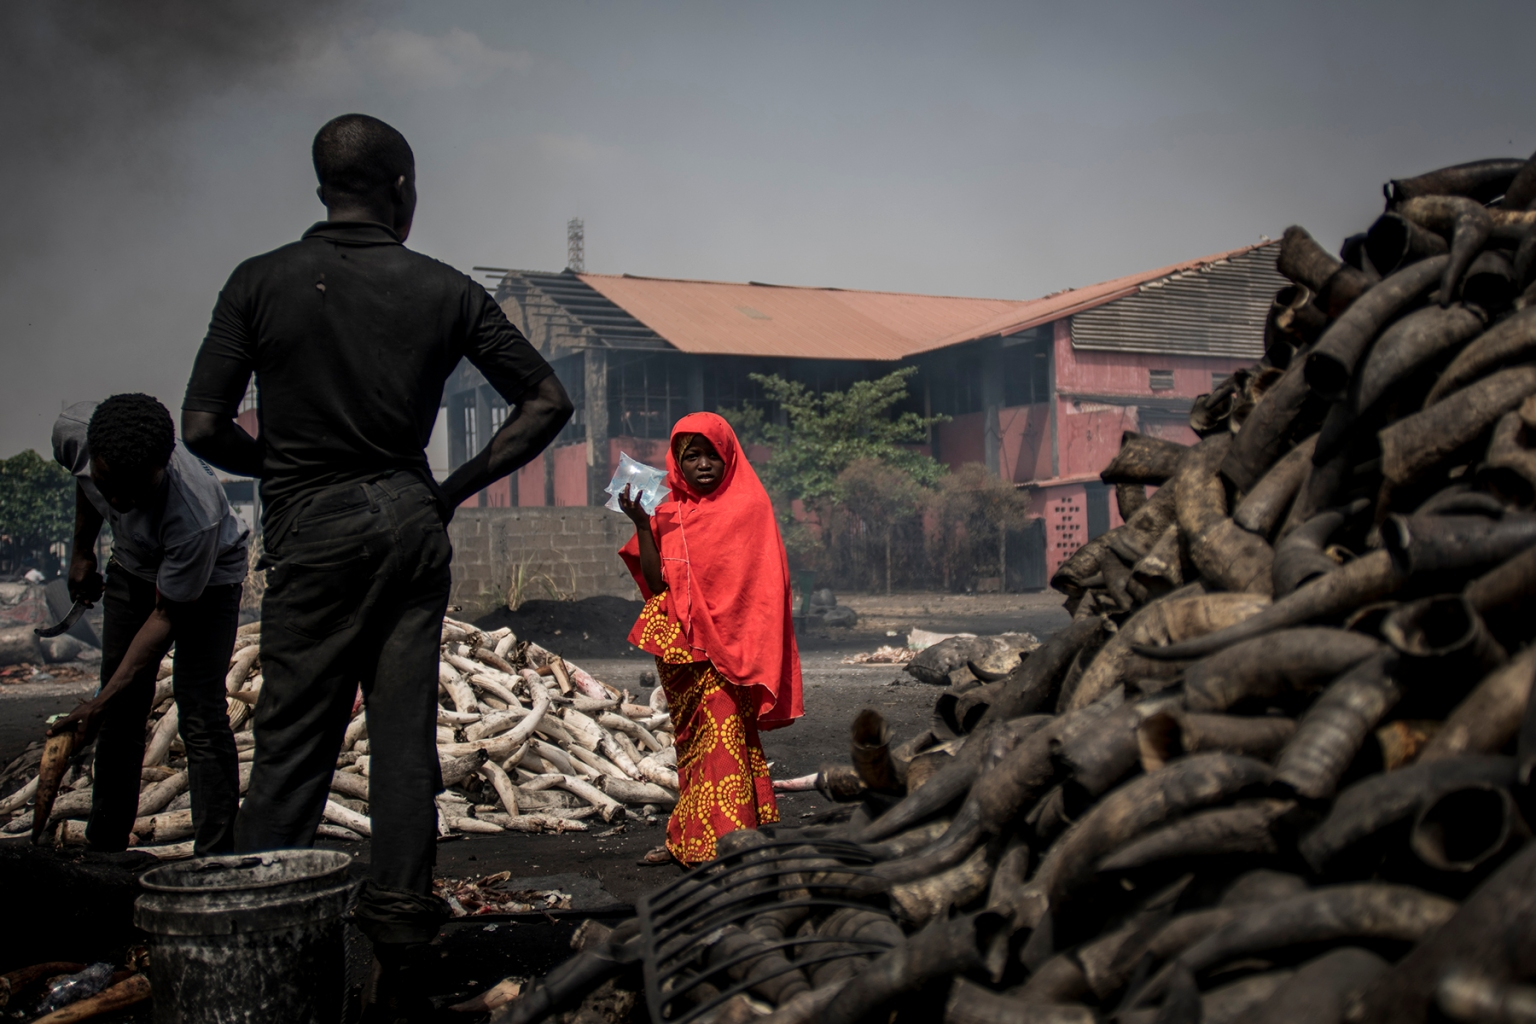 A girl stands in front of cow horns at Kaduna Abatour meat market in North Kaduna on Feb. 25 as Nigeria awaited results of its presidential election. CRISTINA ALDEHUELA/AFP/Getty Images